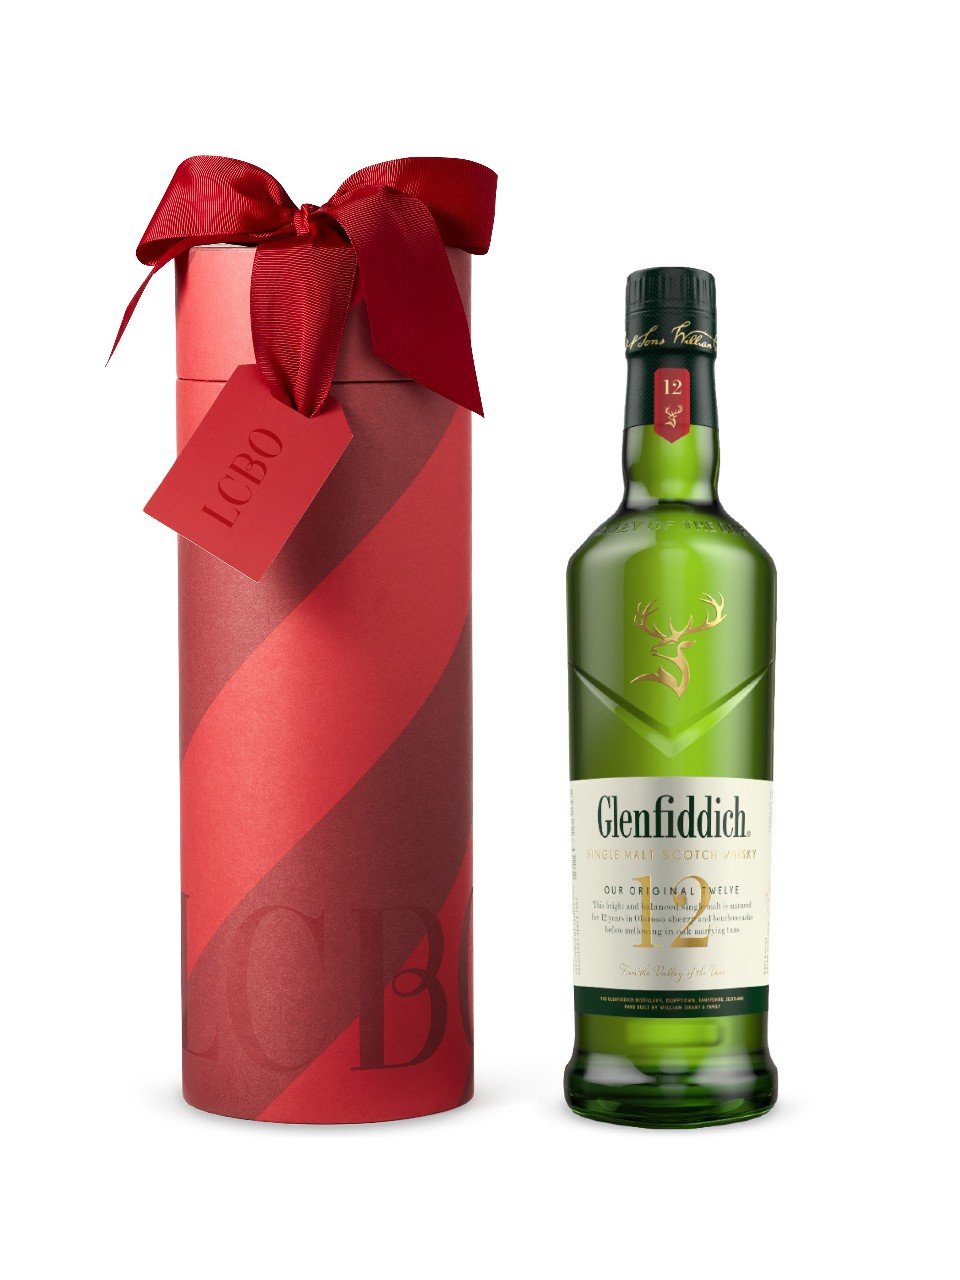 Glenfiddich 12 Year Old Single Malt Scotch Whisky in Gift Box from LCBO